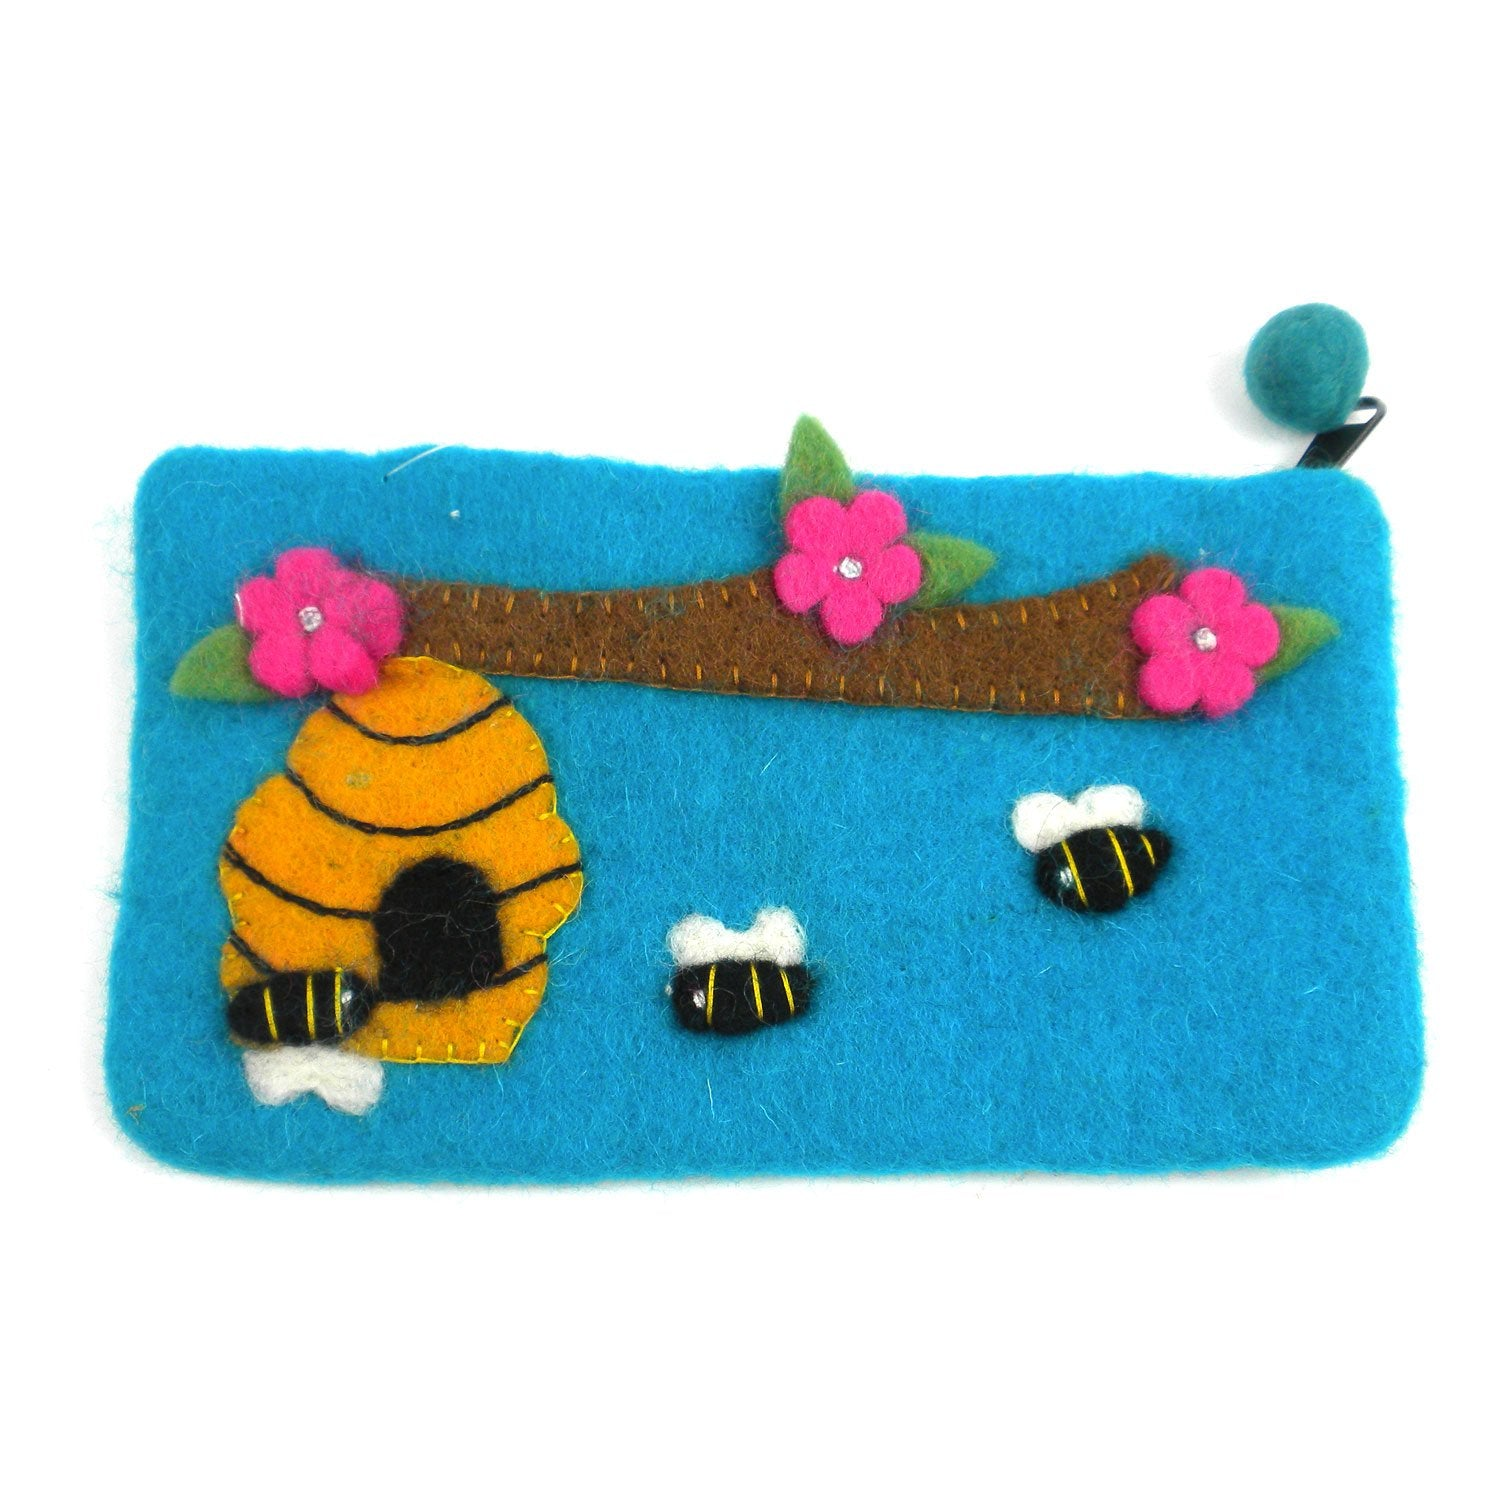 "Hand Crafted Felt Pouch from Nepal: 8"" x 4.5"", Blue Bee"